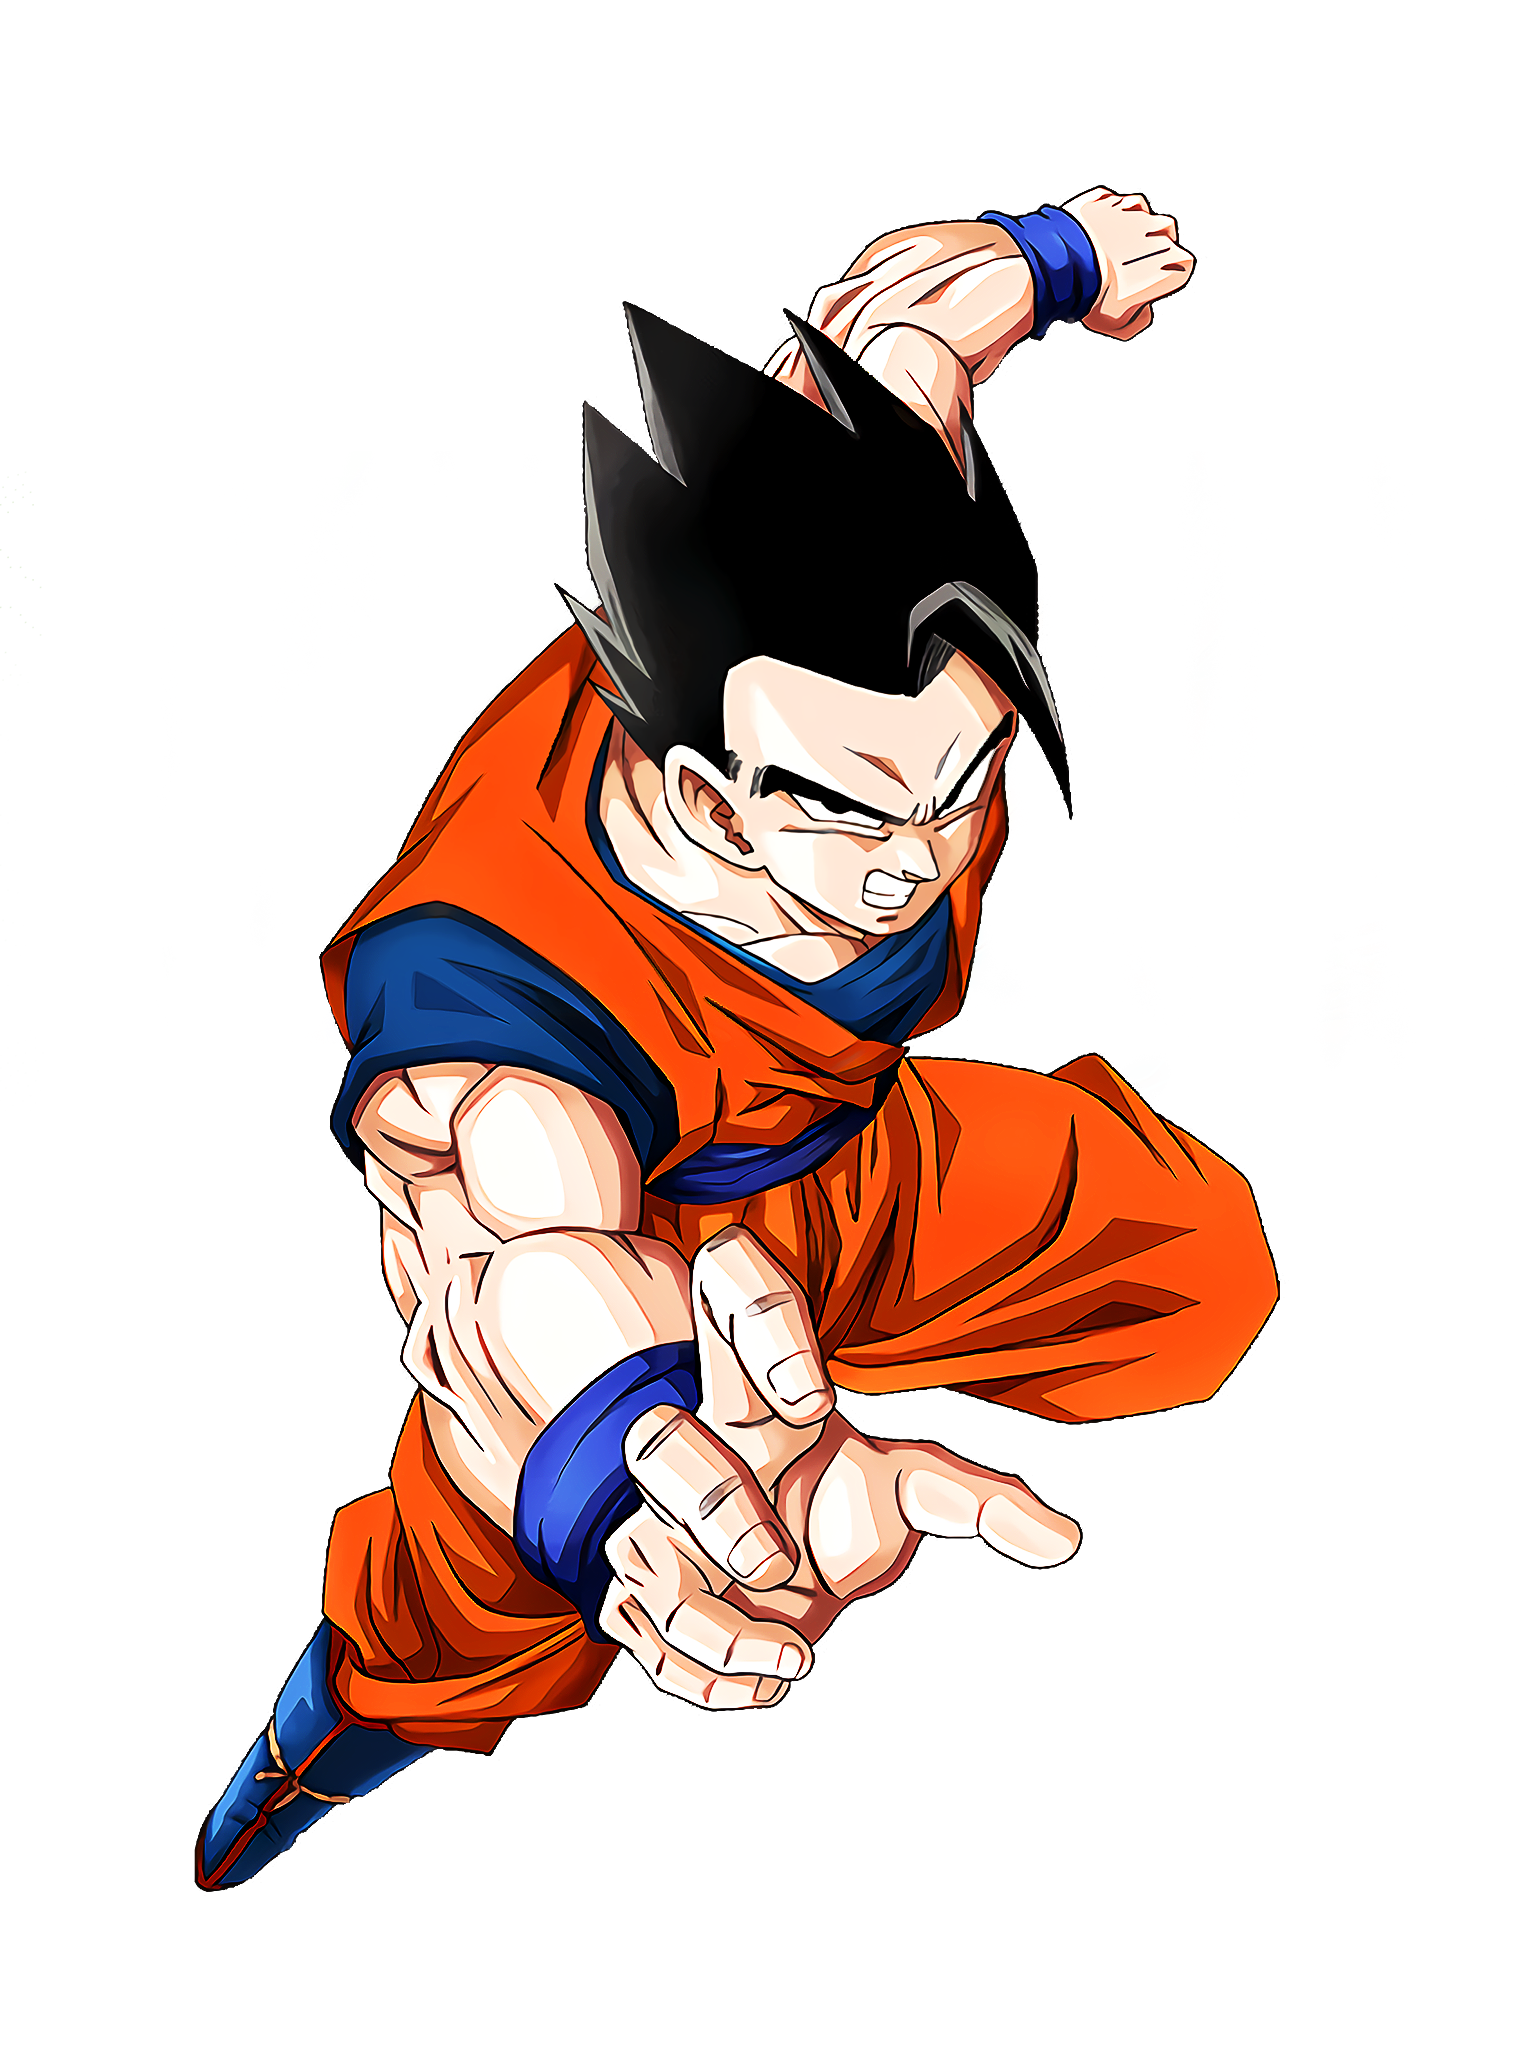 Exceptional Potential Ultimate Gohan Character Render (Dragon Ball Z Dokkan Battle) .png